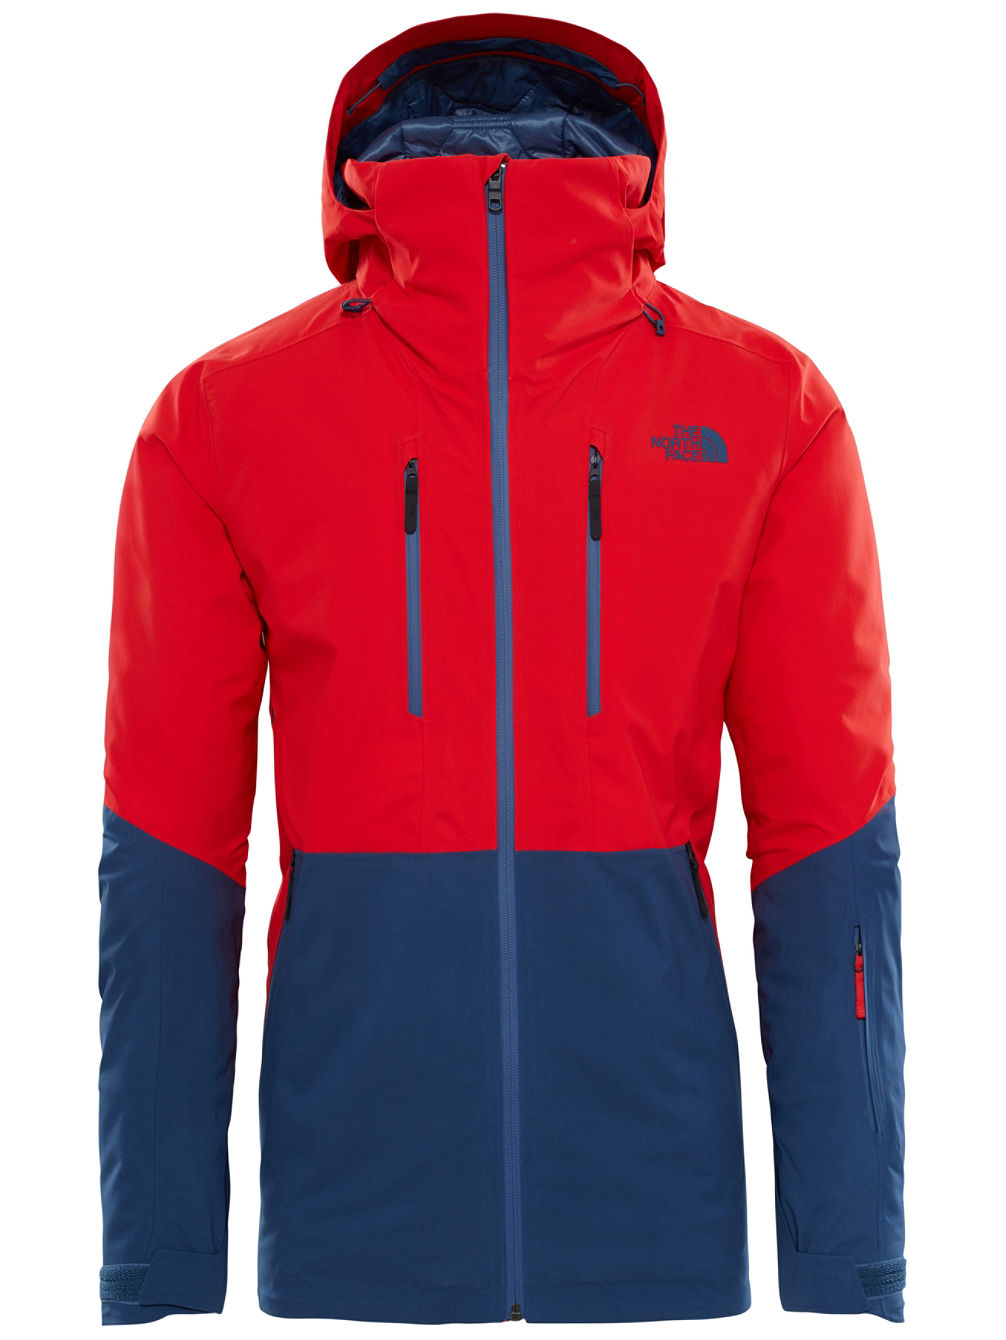 4e94b1ddfa4c Buy THE NORTH FACE Anonym Jacket online at Blue Tomato